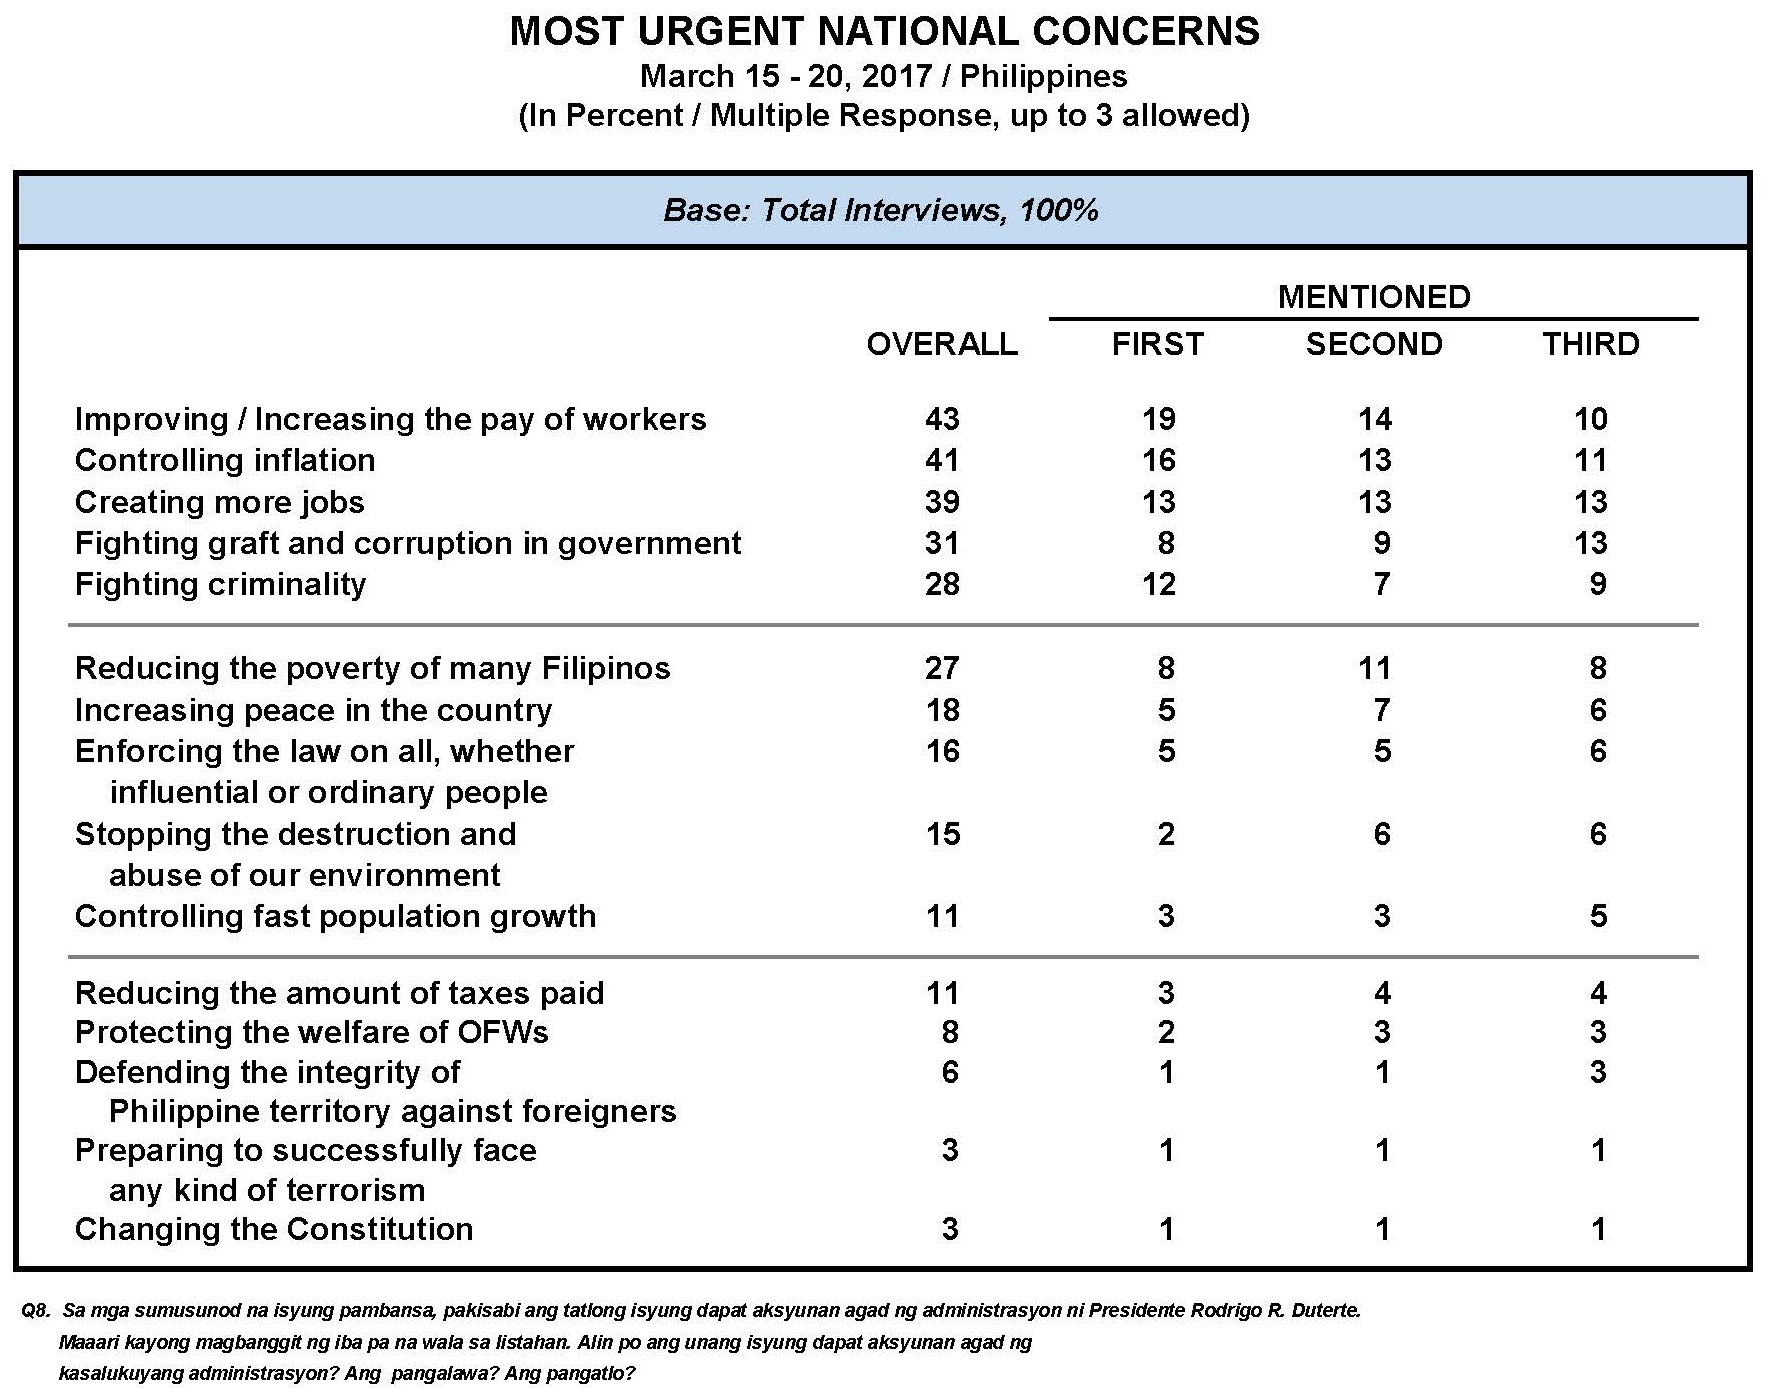 March 2017 Nationwide Survey on National Urgent Concerns and the Performance Ratings of the  Duterte Administration